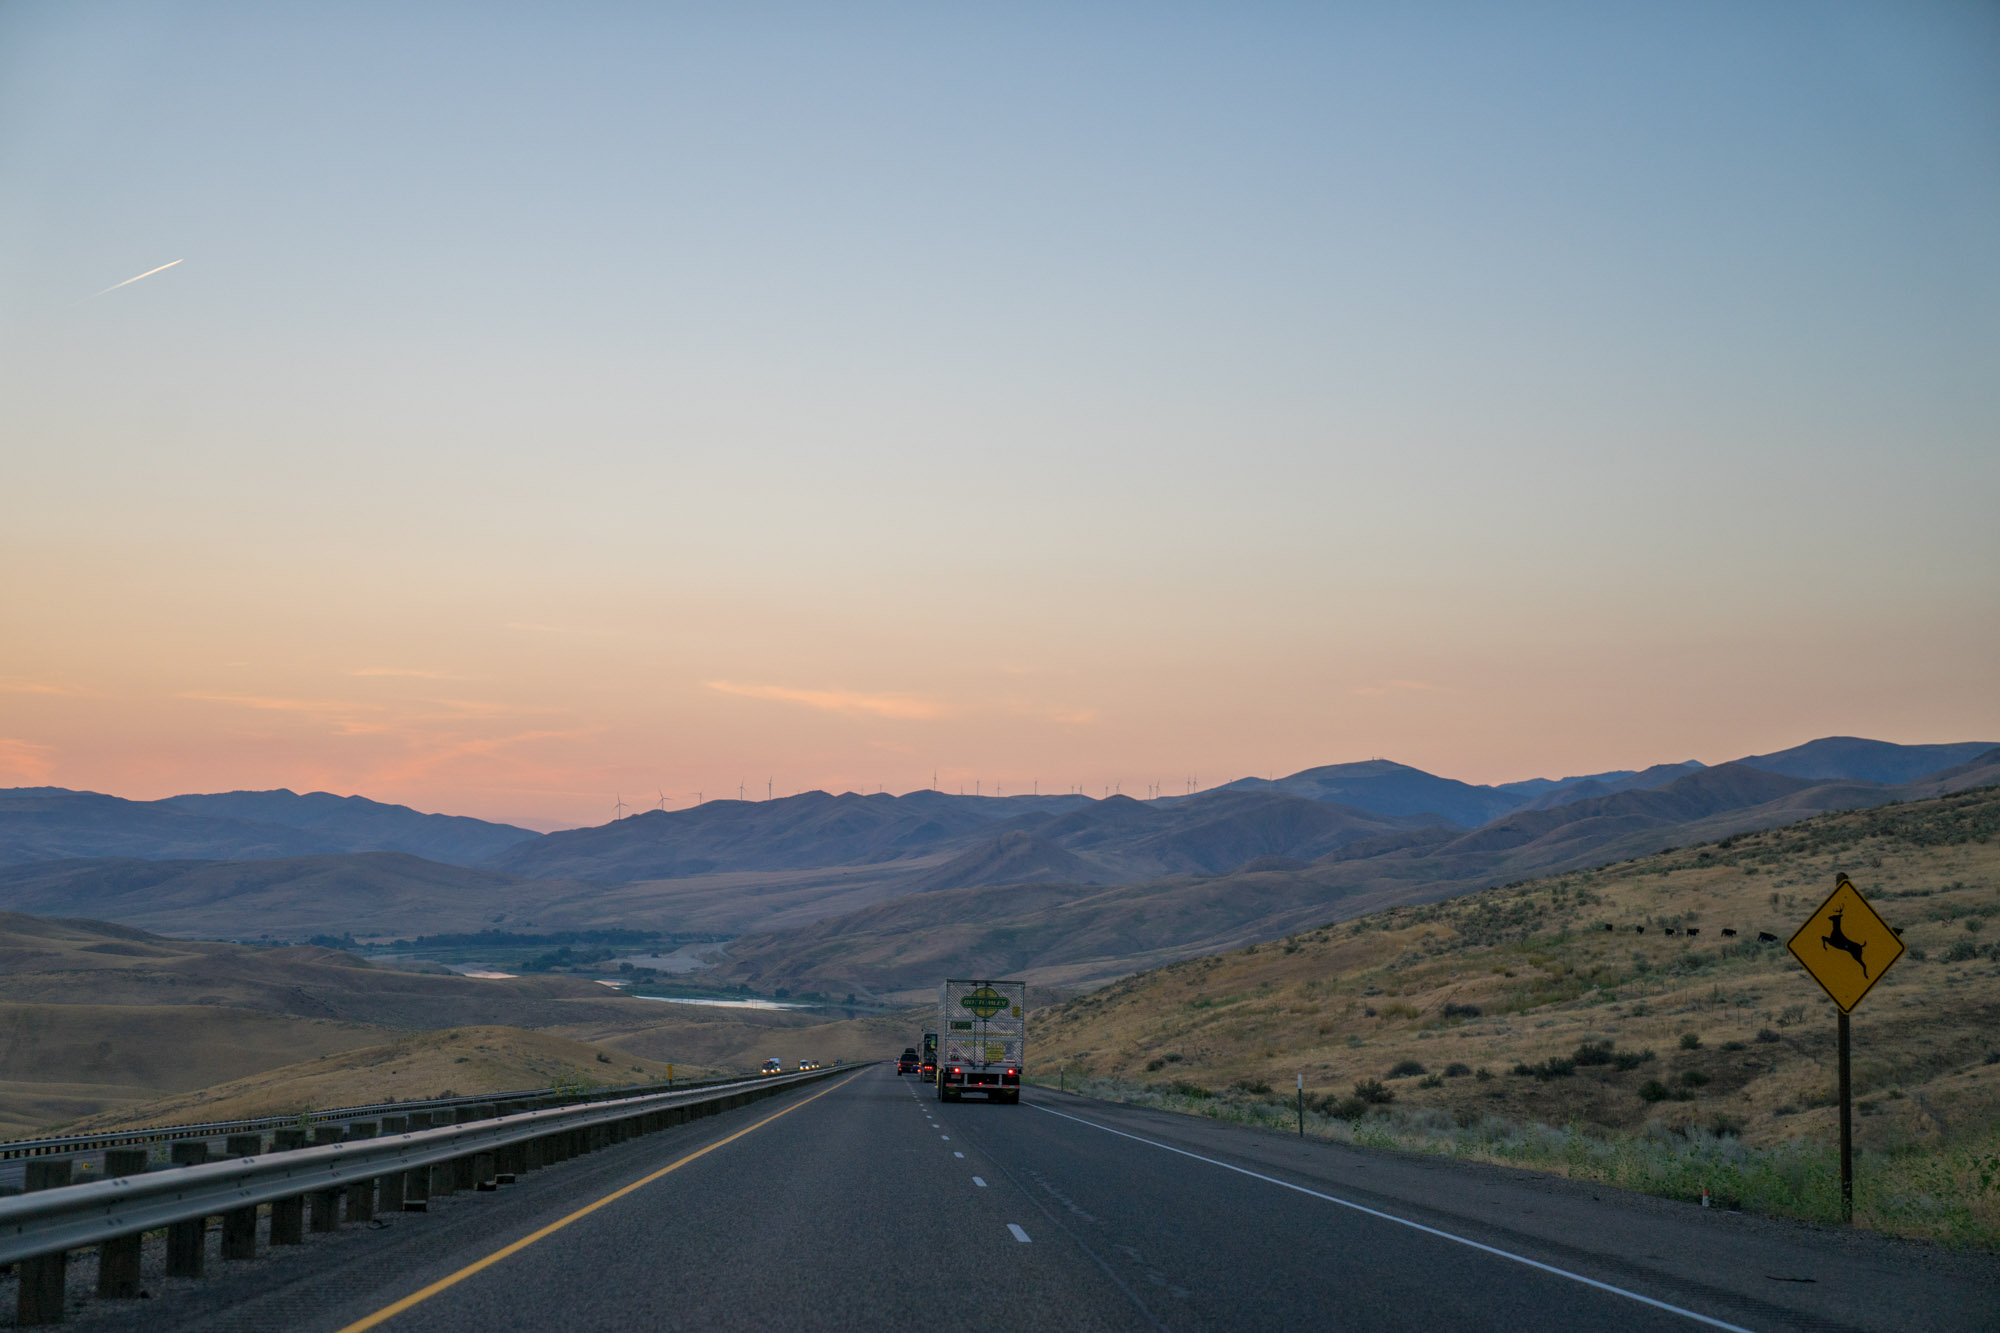 A road heads towards the mountains of Oregon.